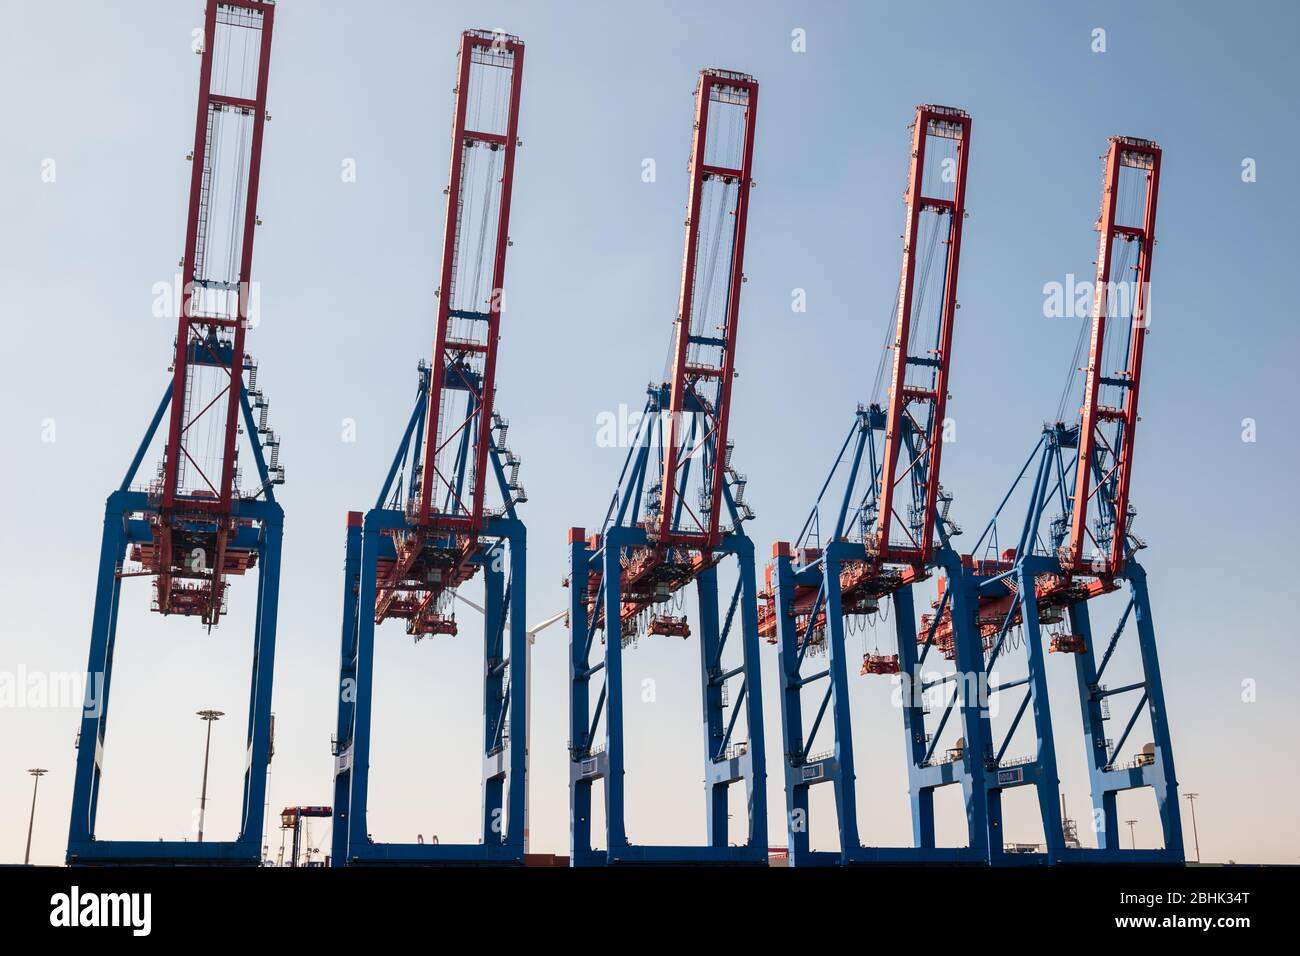 A row of large containter gantry cranes with jibs up at the Container Terminal Tollerort CTT in the Port of Hamburg, run by the HHLA Stock Photo